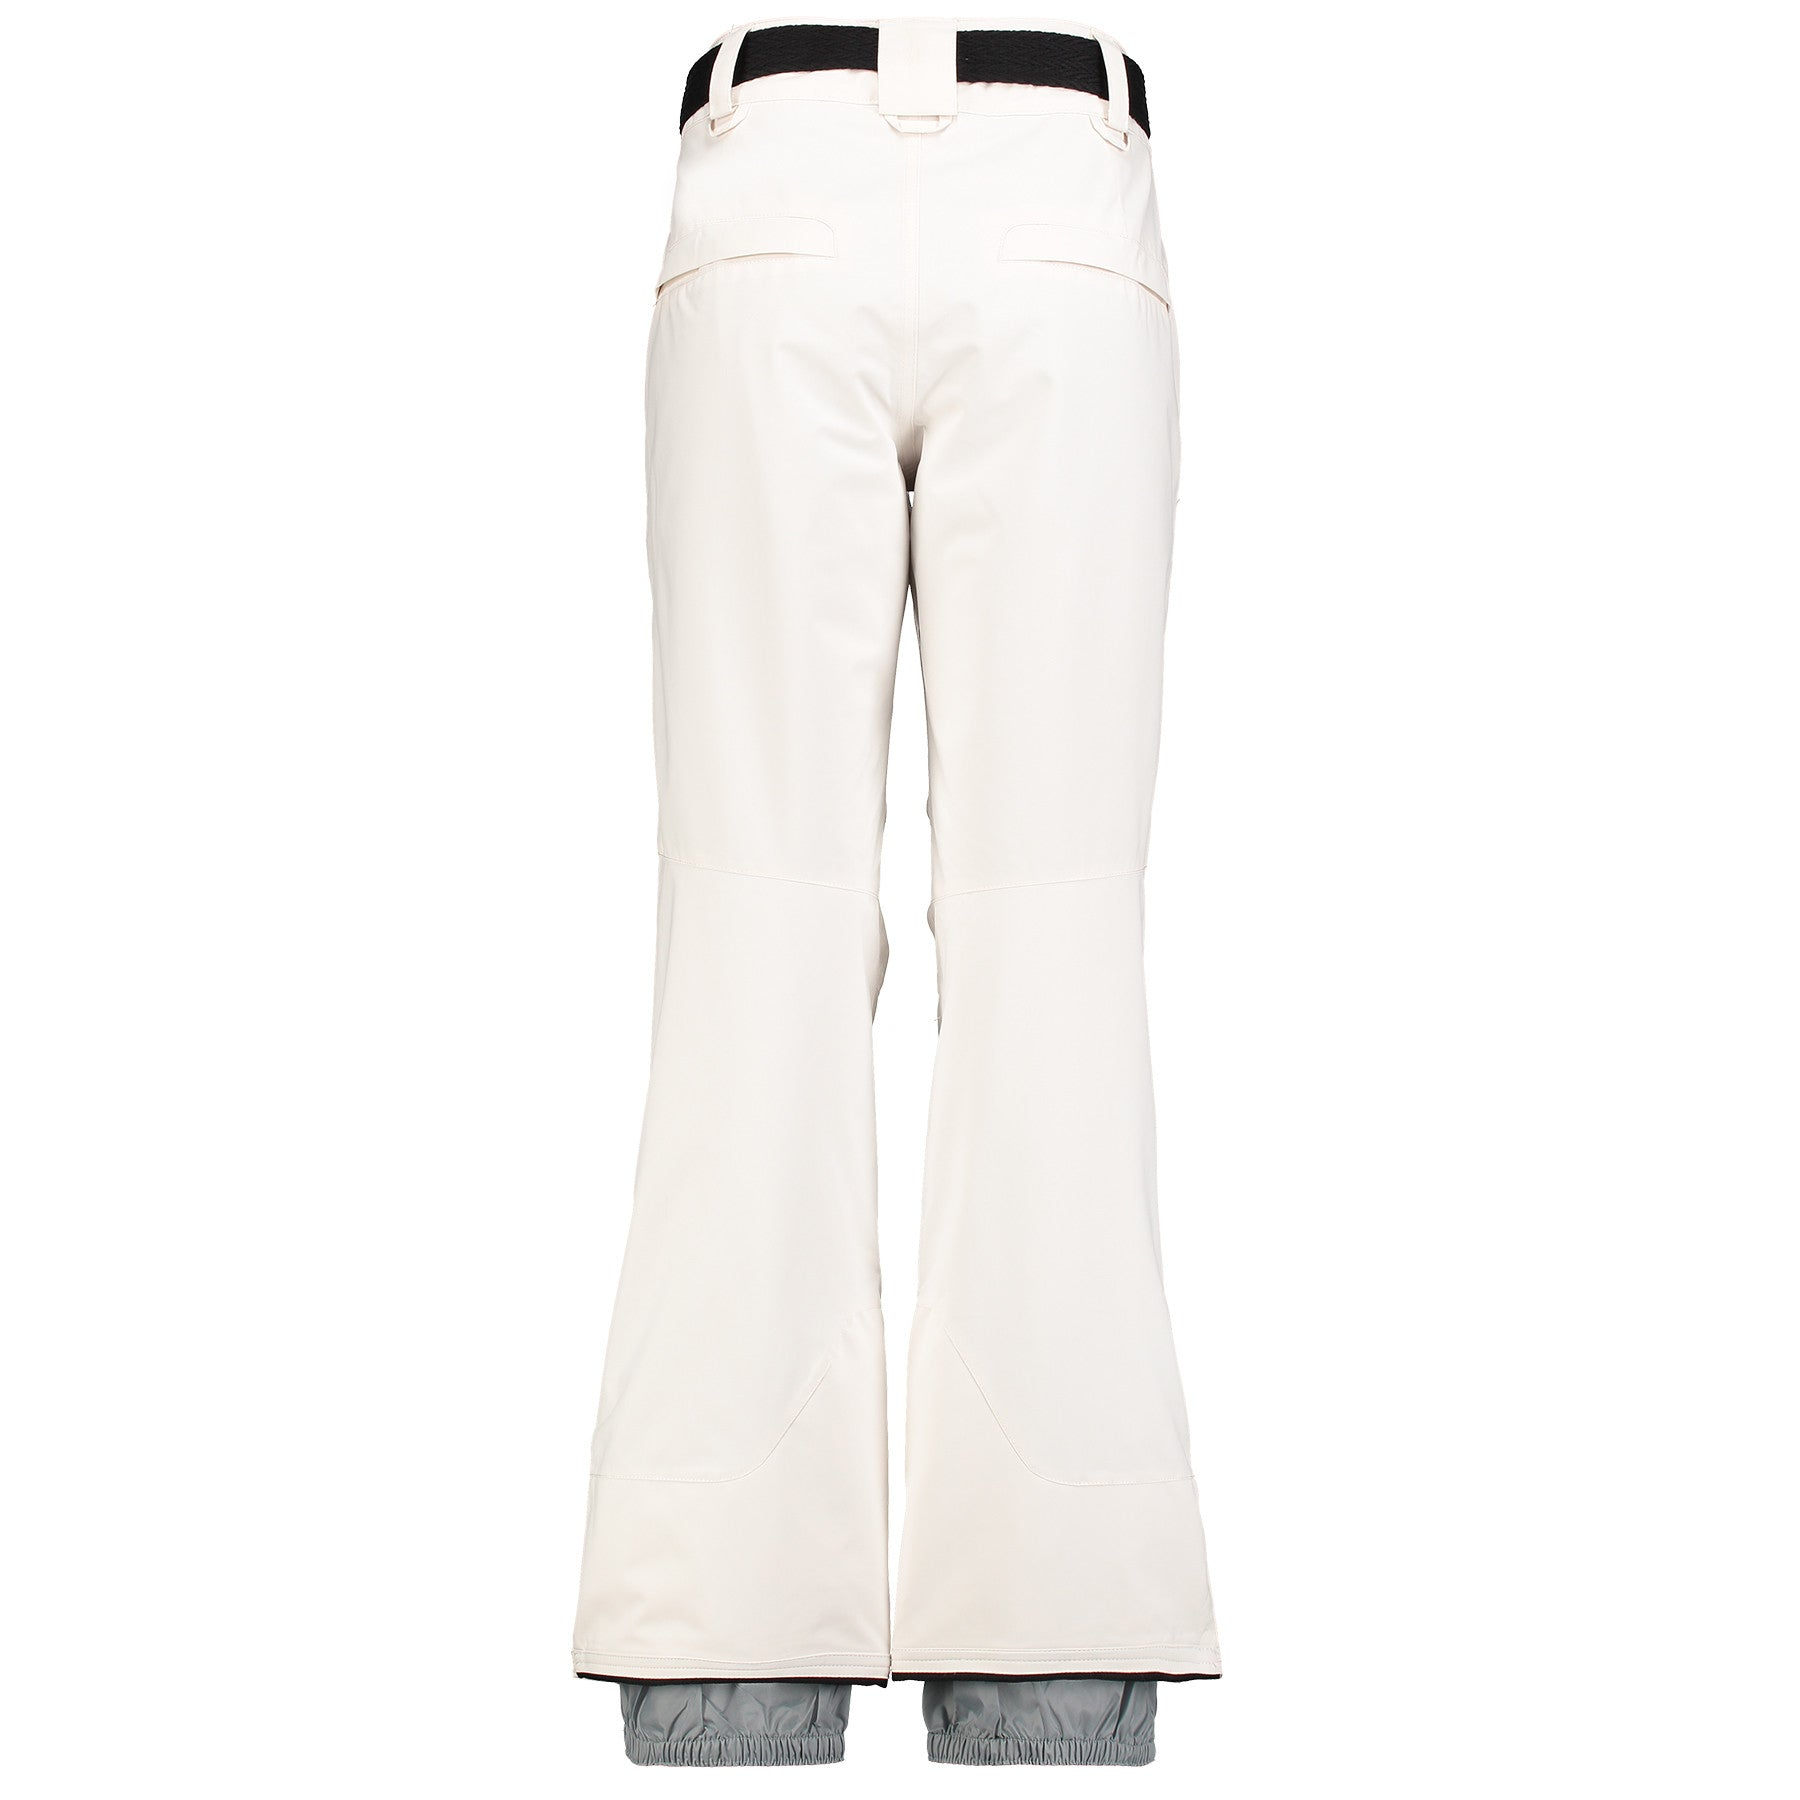 Womens Star Pants Powder White - Stoked Boardshop  - 2